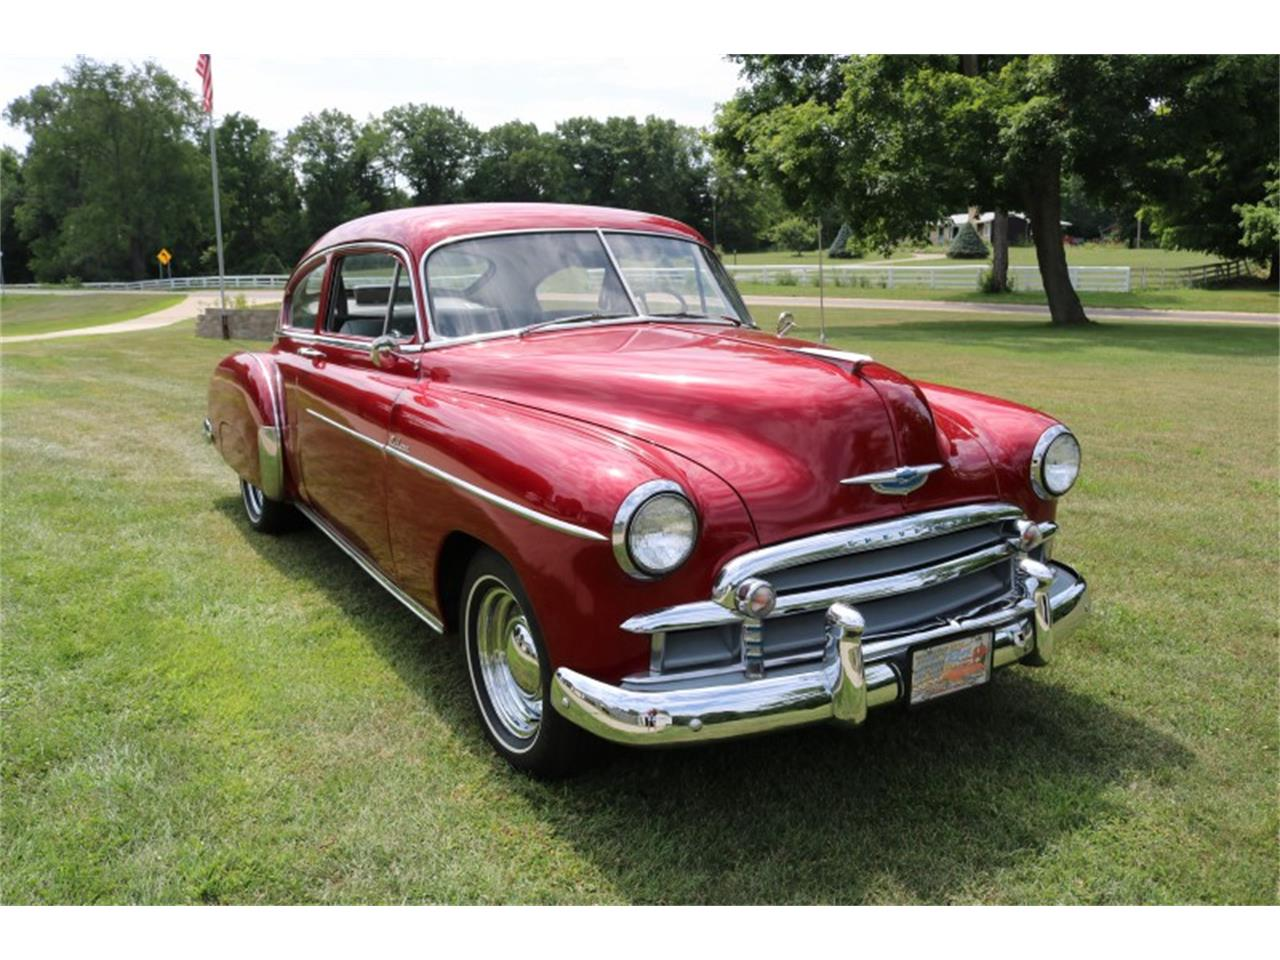 For Sale: 1950 Chevrolet 2-Dr Sedan in Holly, Michigan